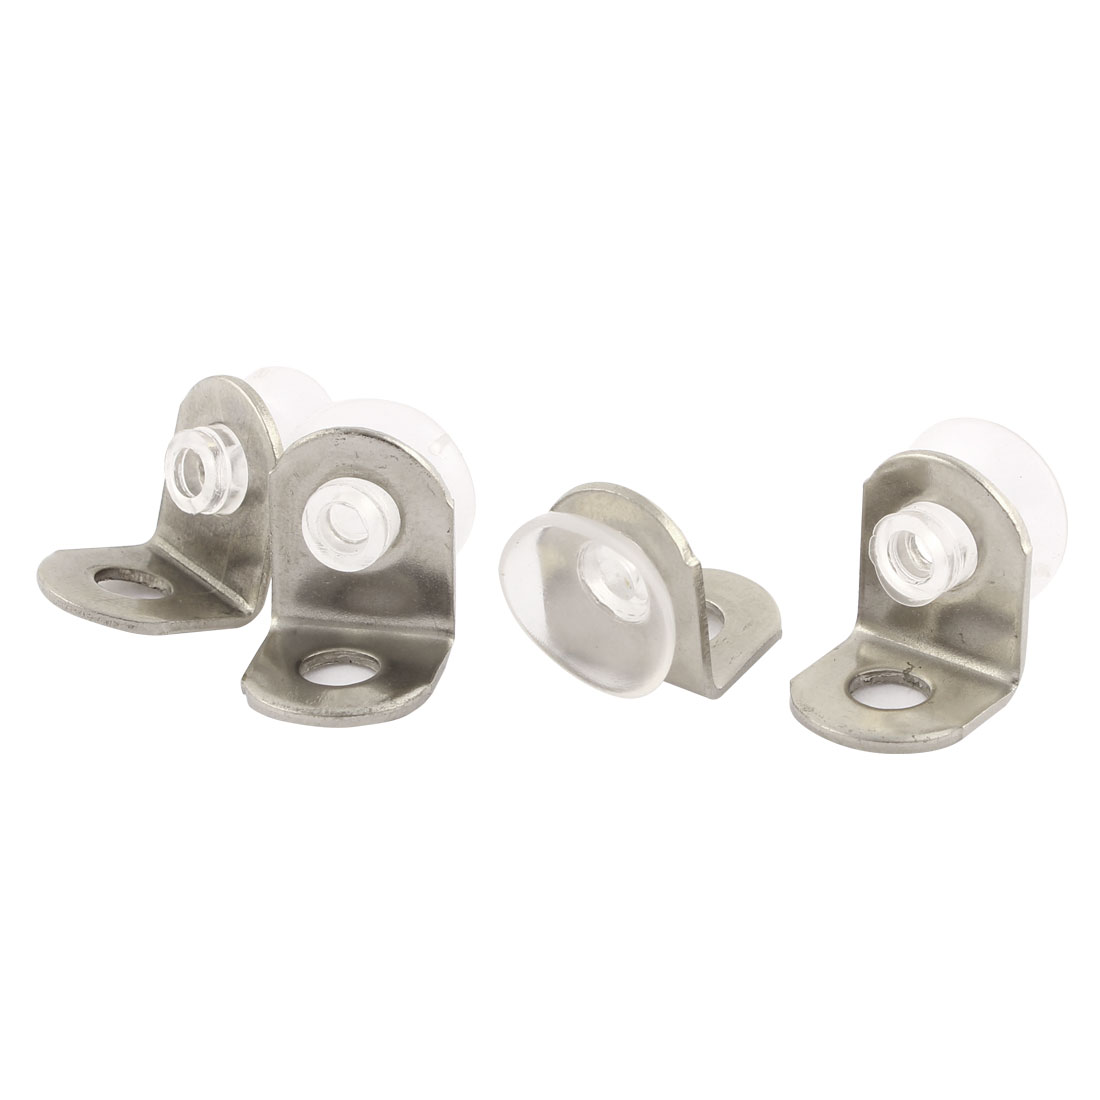 12mmx12mmx15mm Glass Shelf Mounting Holder Support Suction Cup Plates 4Pcs